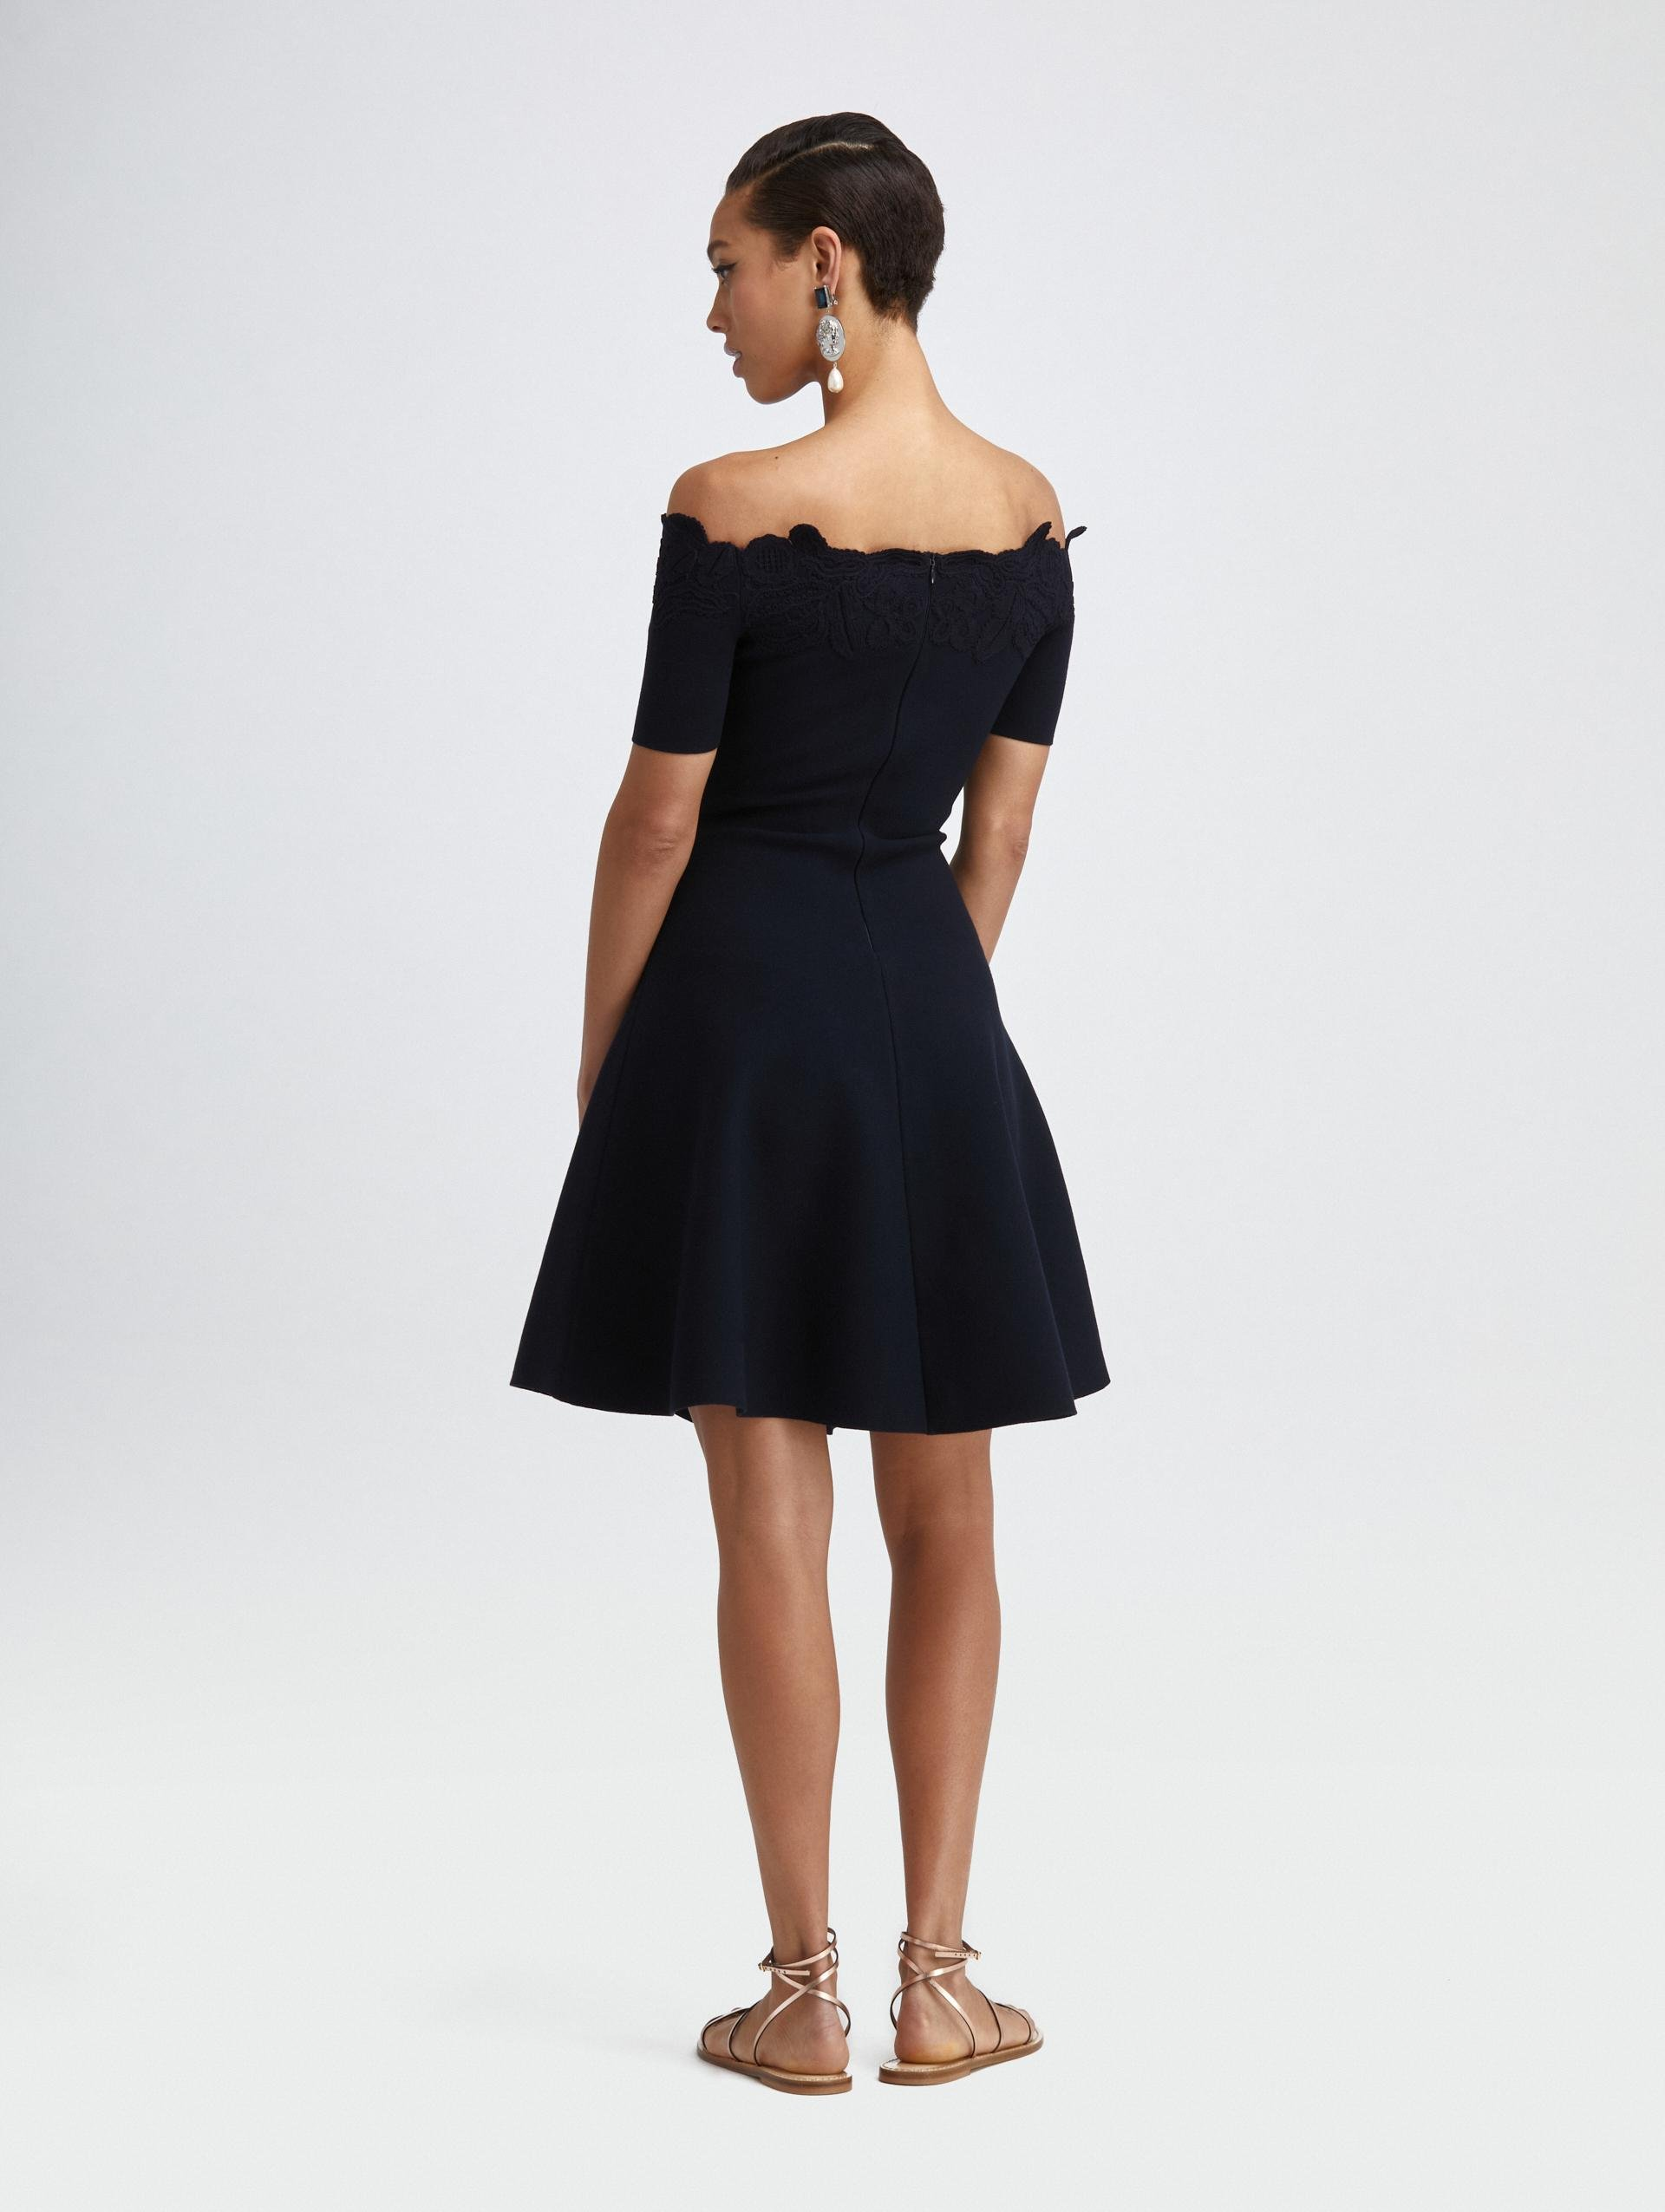 EMBROIDERED FIT AND FLARE KNIT DRESS 1